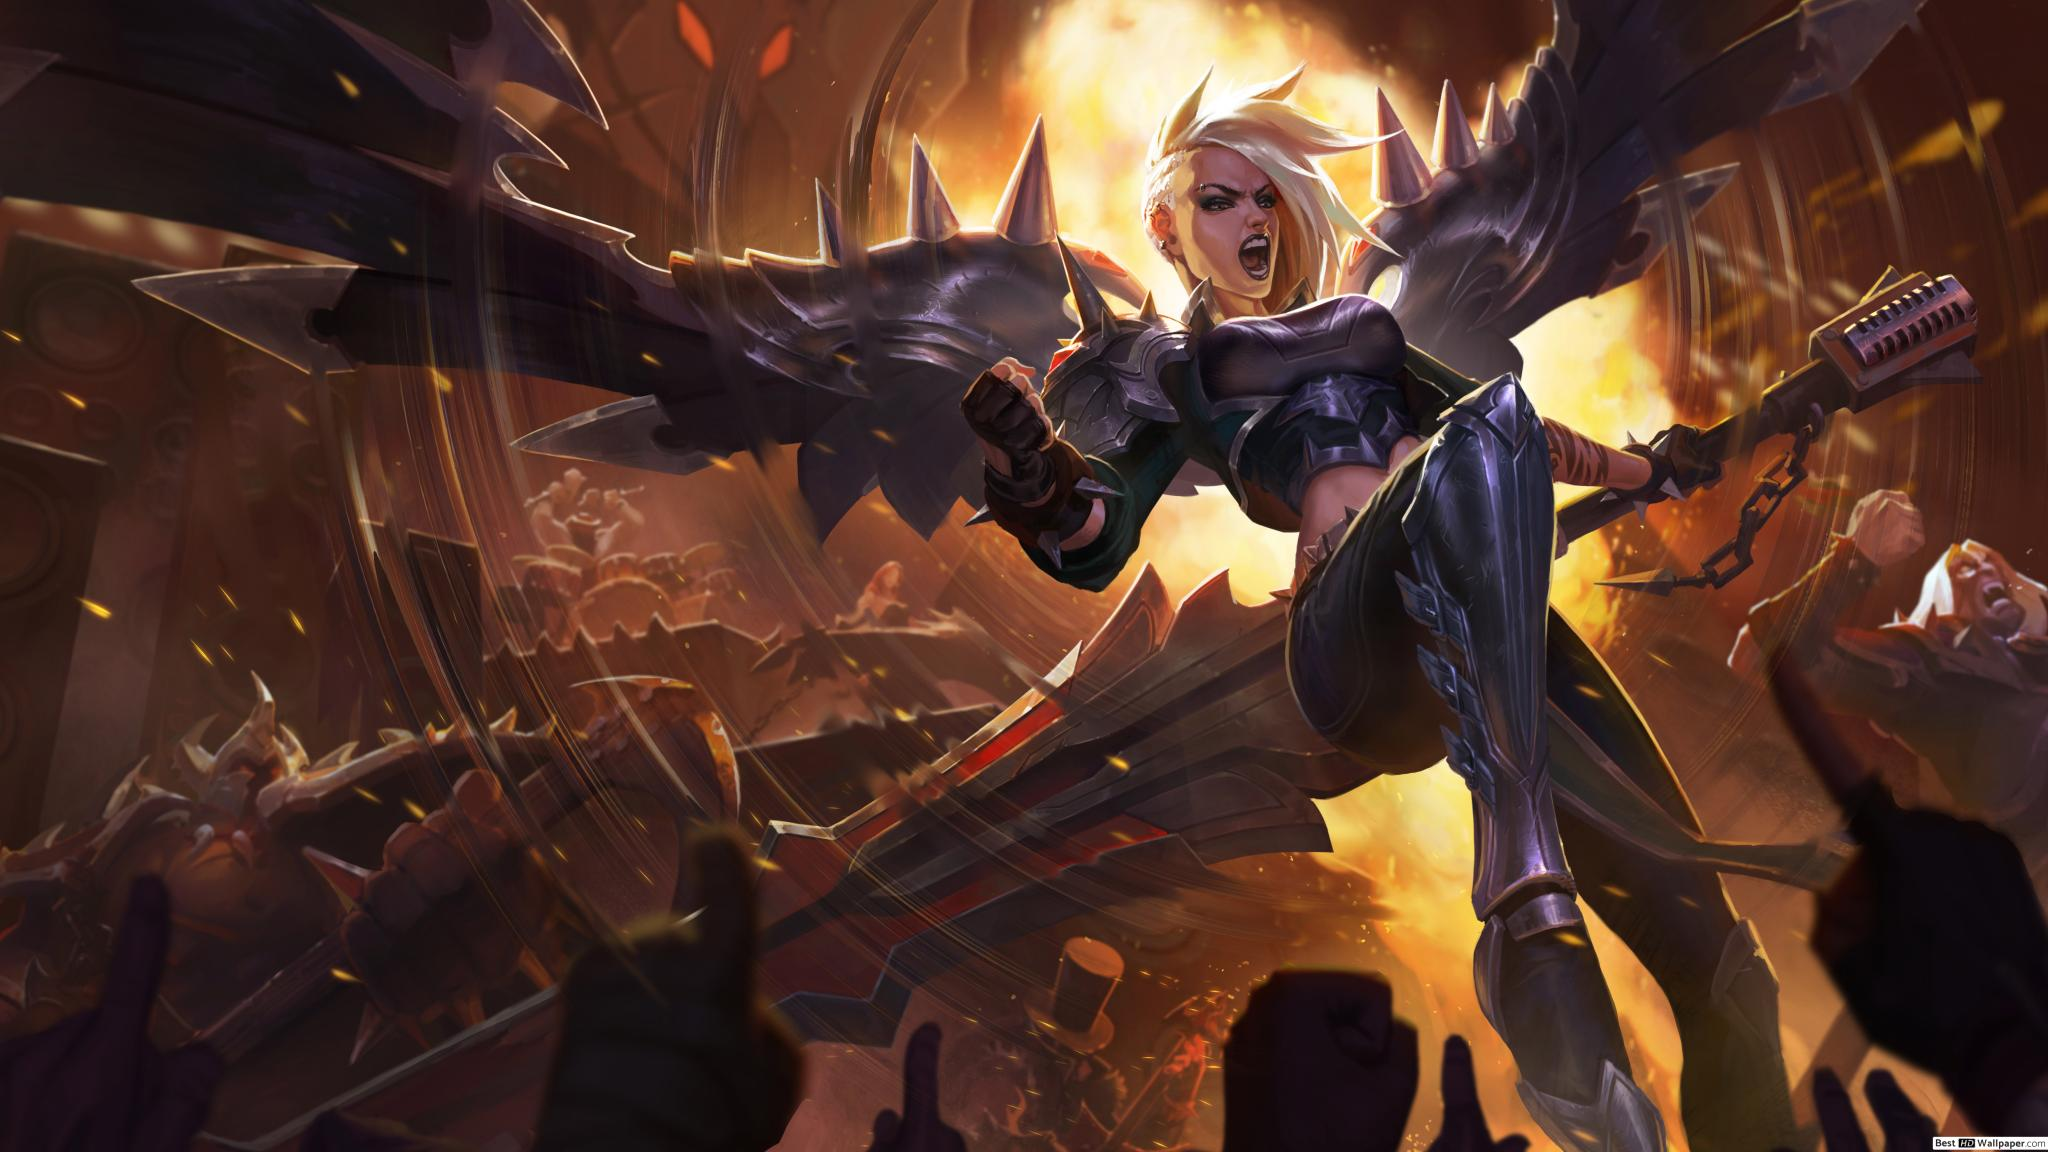 League of Legends - splash art for Pentakill Kayle, depicting a young woman with metal wings rocking out.